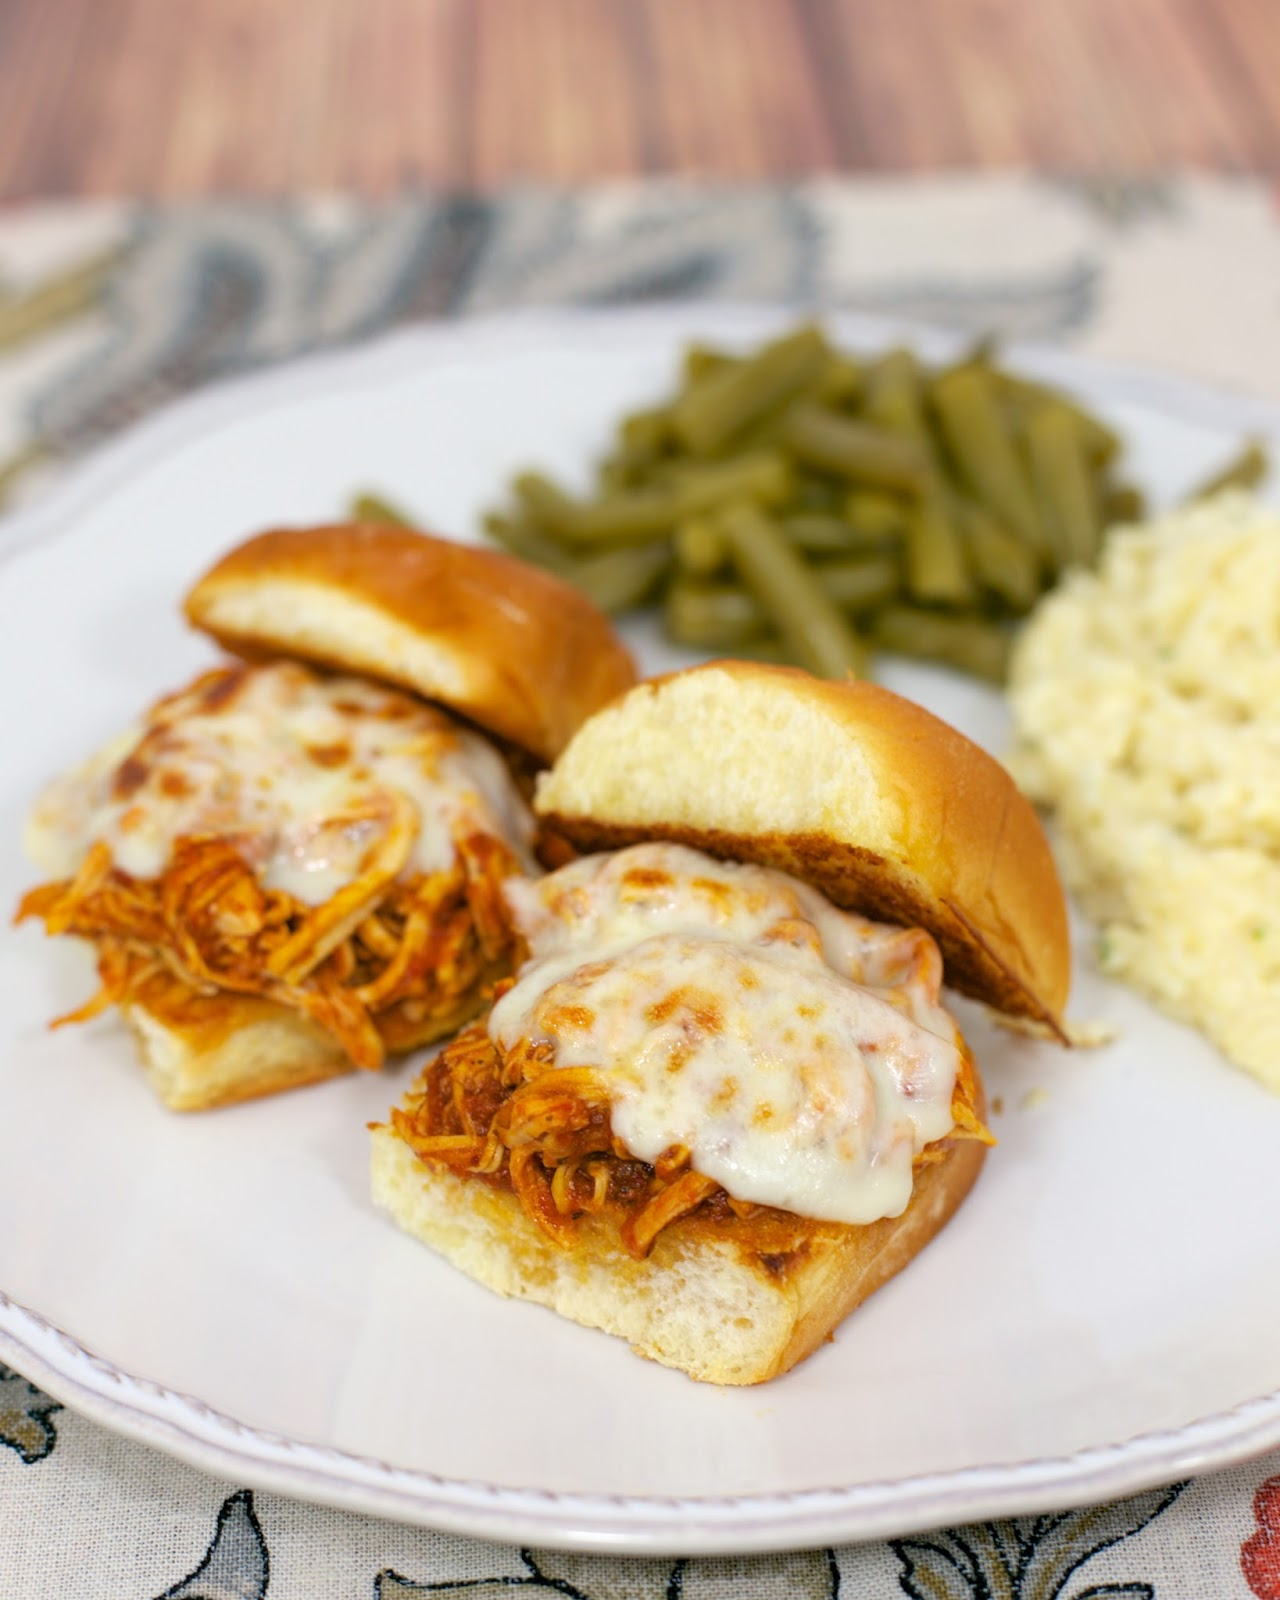 Slow Cooker Chicken Parmesan Sliders - only 3 ingredients for the chicken! Chicken, spaghetti sauce, garlic, mozzarella cheese and buns. Great for an easy weeknight meal or tailgating. Everyone cleaned their plate!!